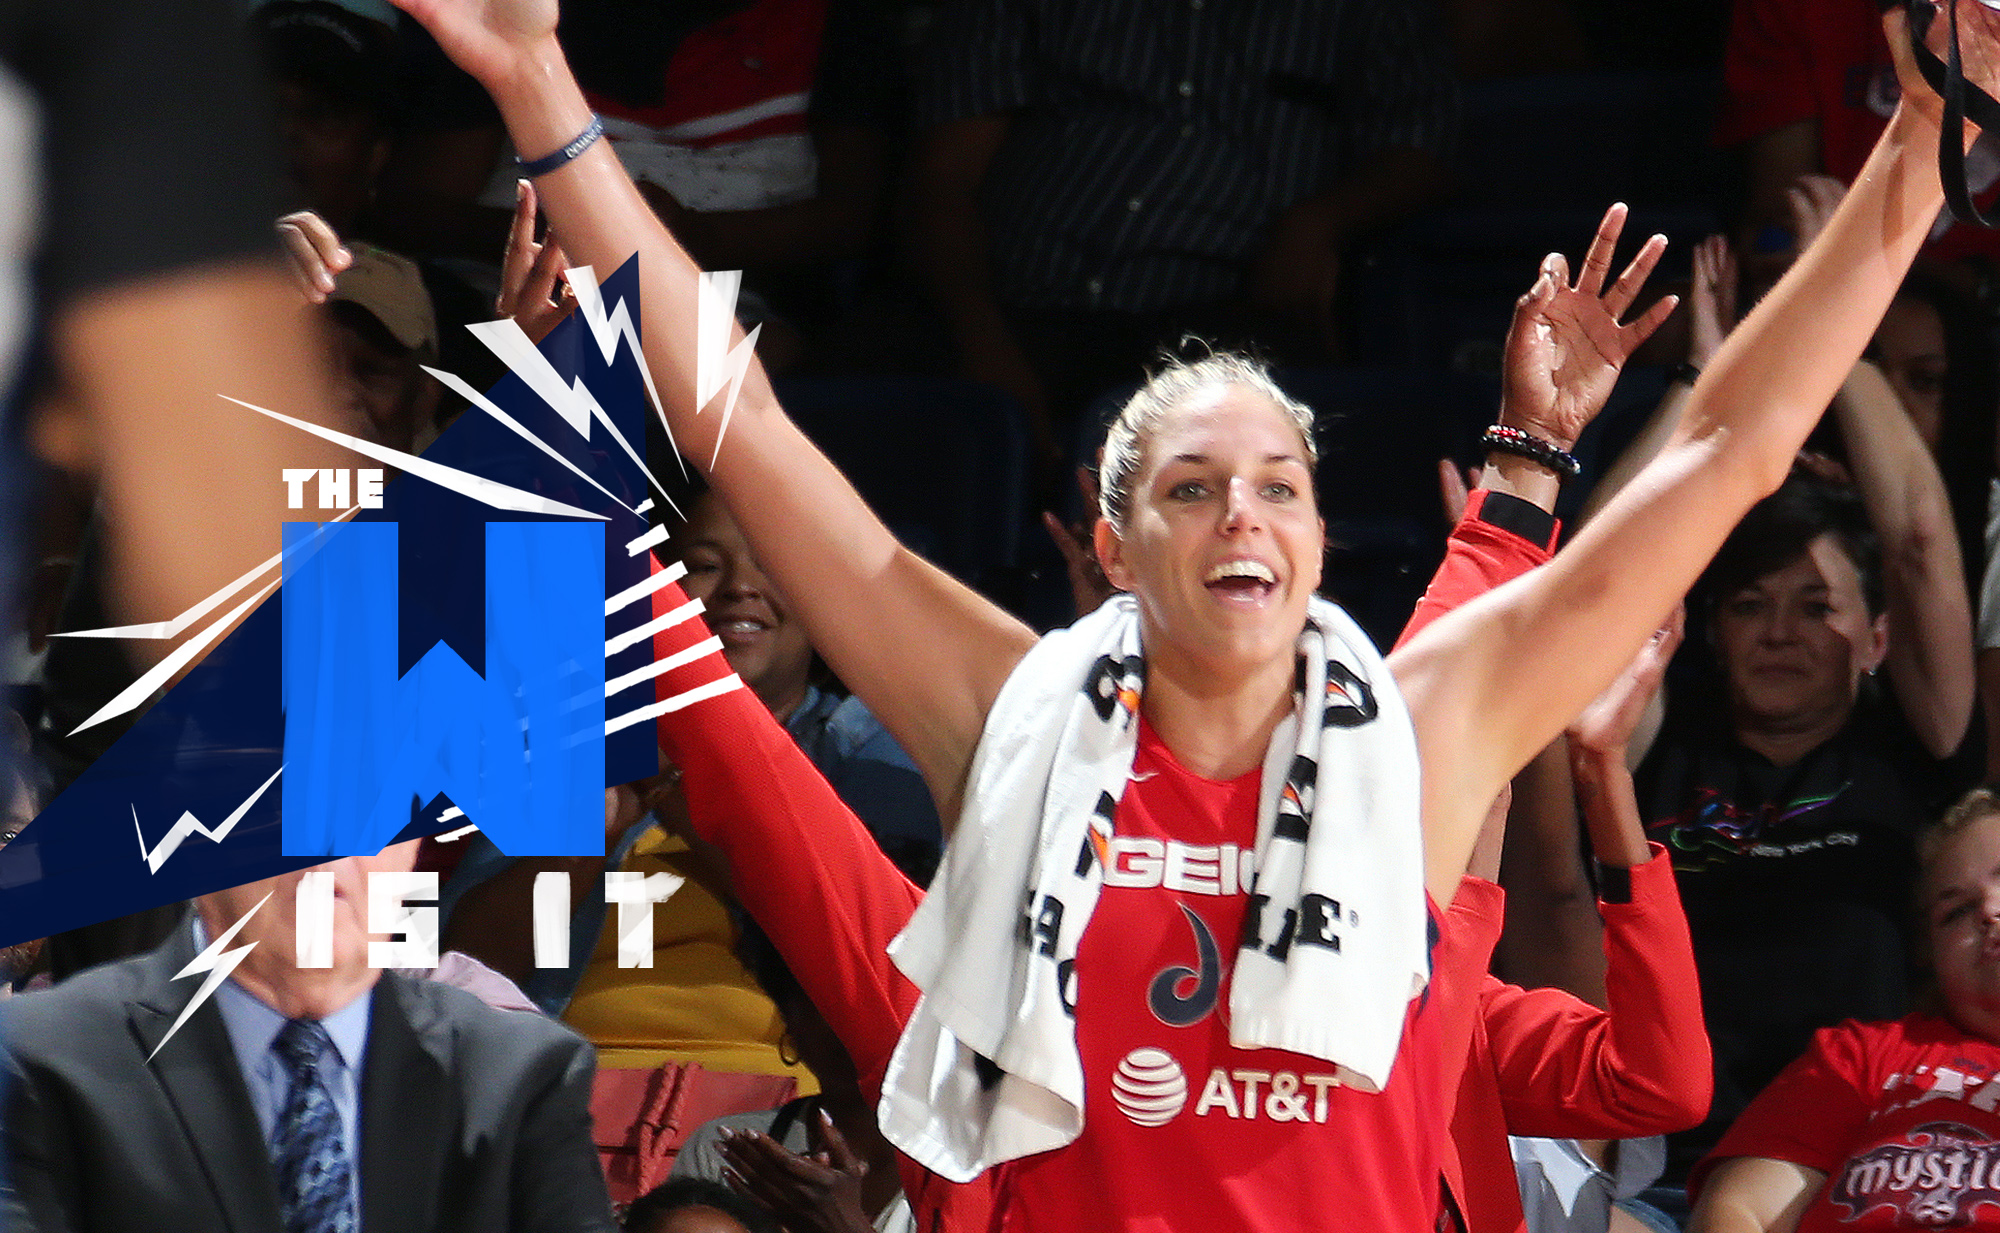 Elena Delle Donne of the Washington Mystics raises her arms above her head in reaction to a play on the court.